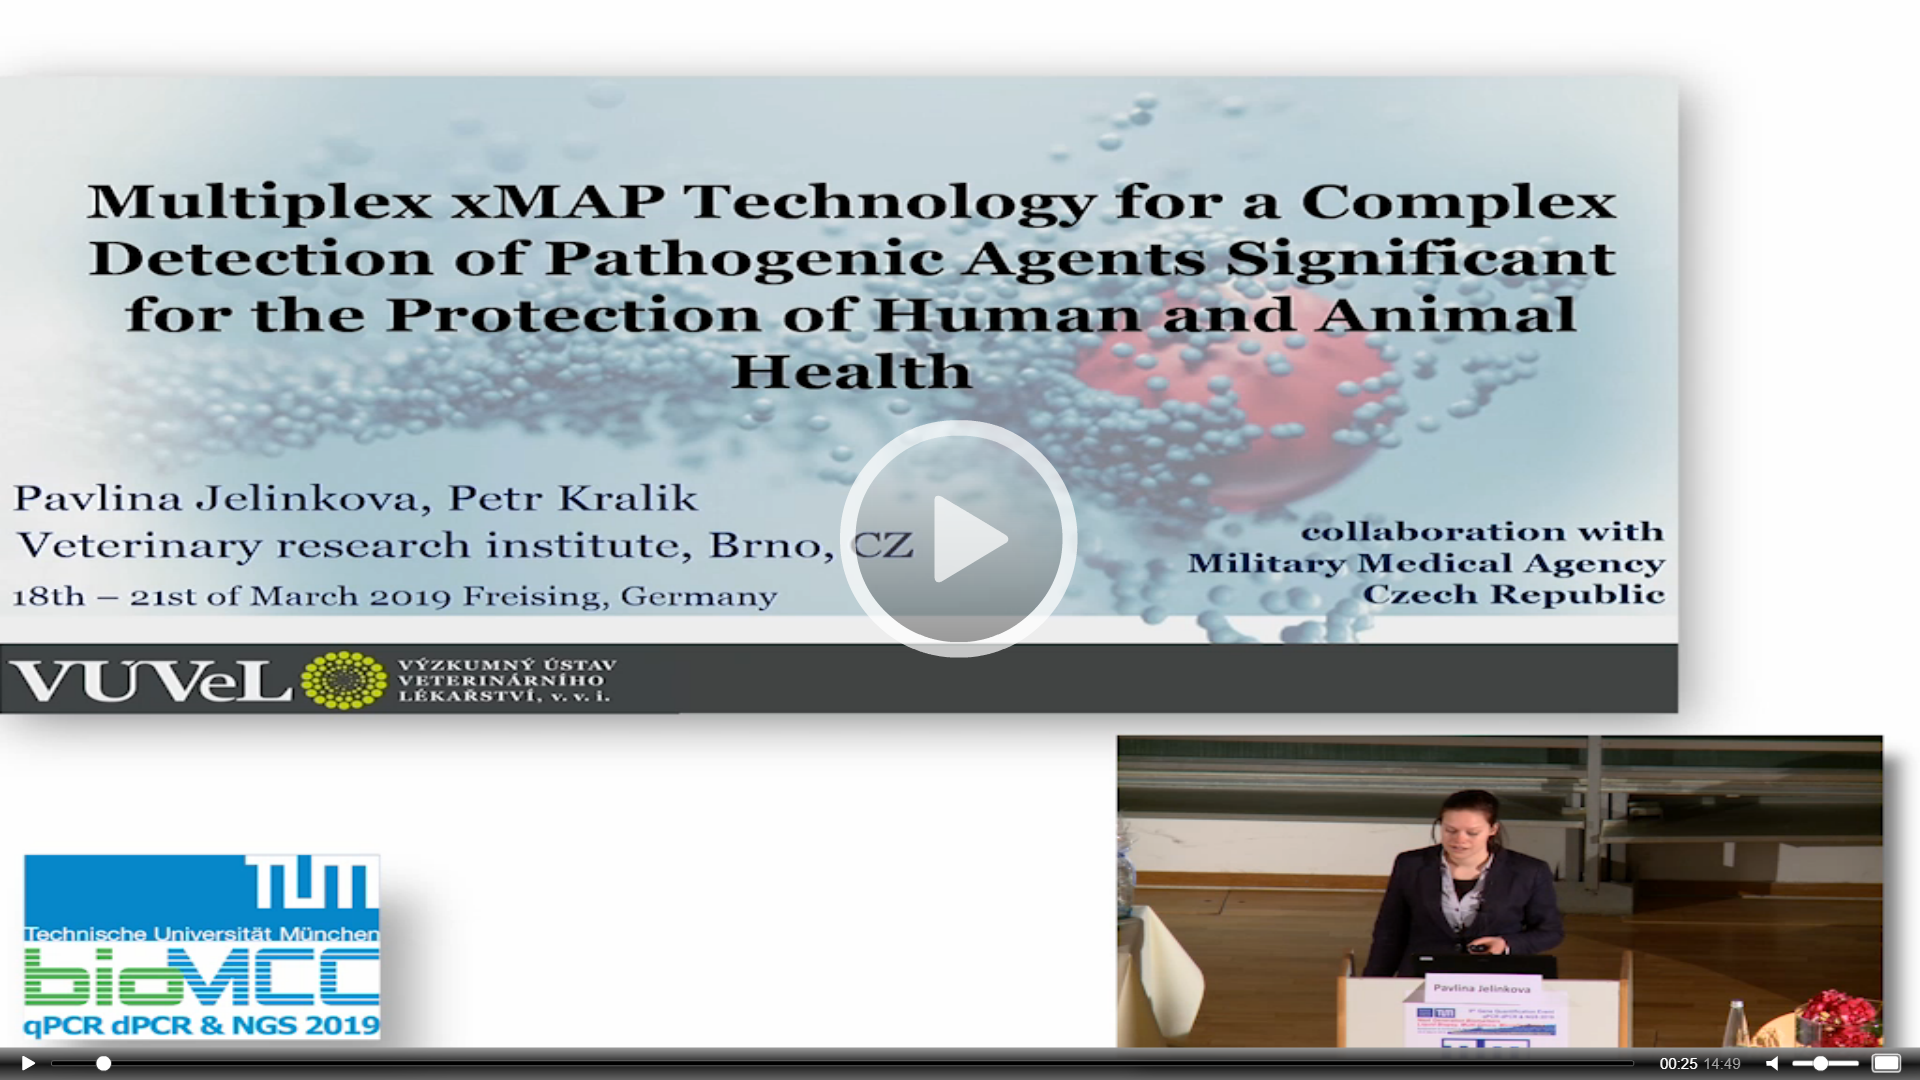 Multiplex xMAP Technology for a Complex Detection of Pathogenic Agents Significant for the Protection of Human and Animal Health